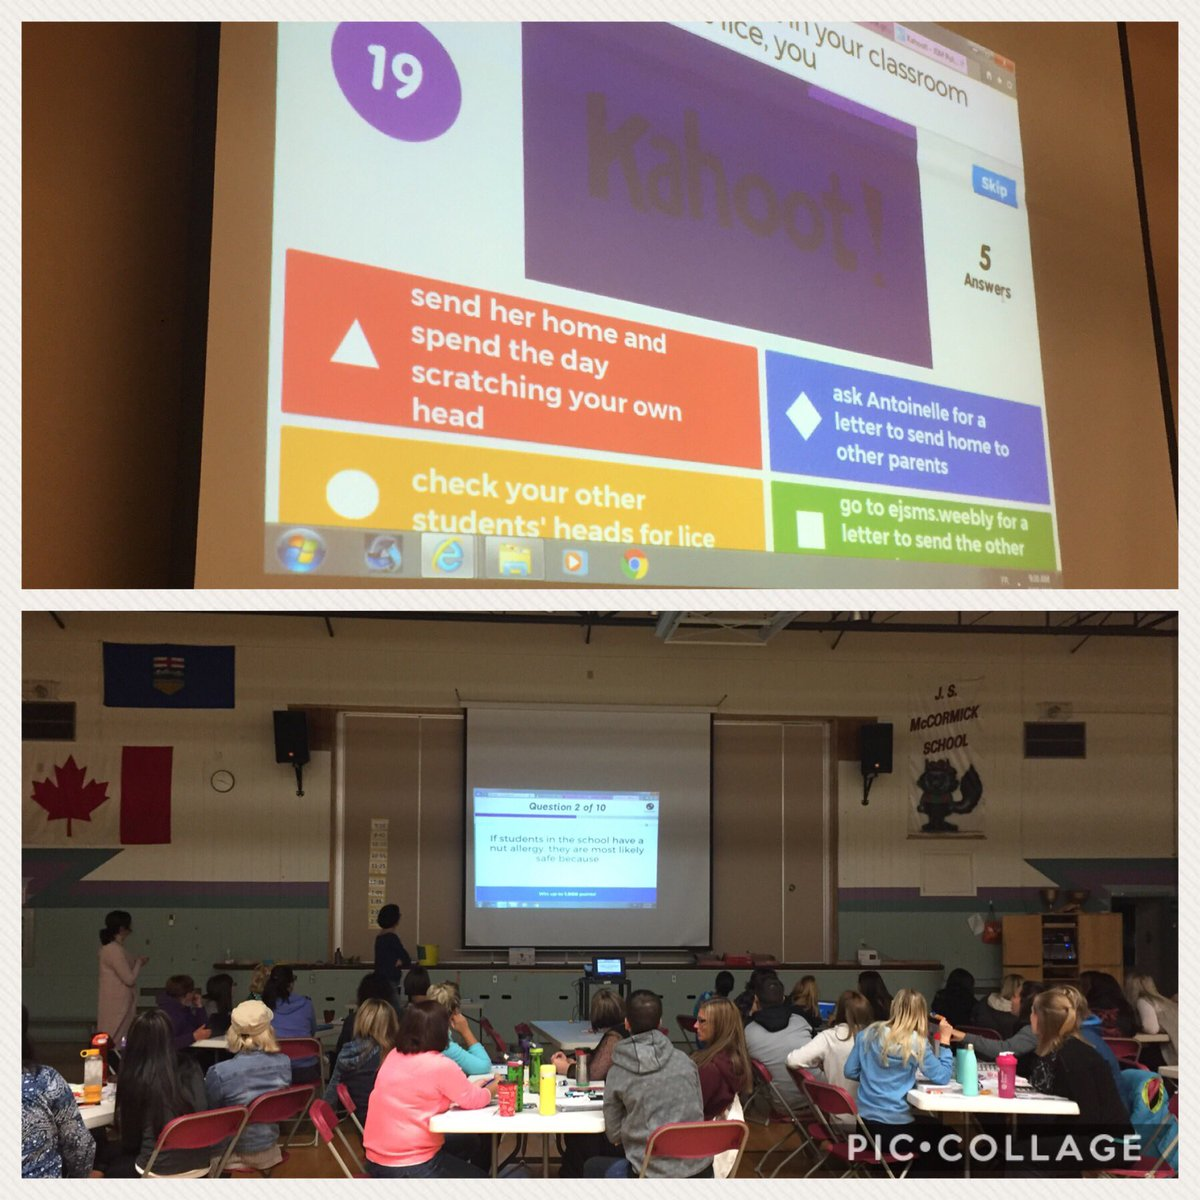 Ecole J S Mccormick On Twitter Kicking Off The Pd With A Kahoot